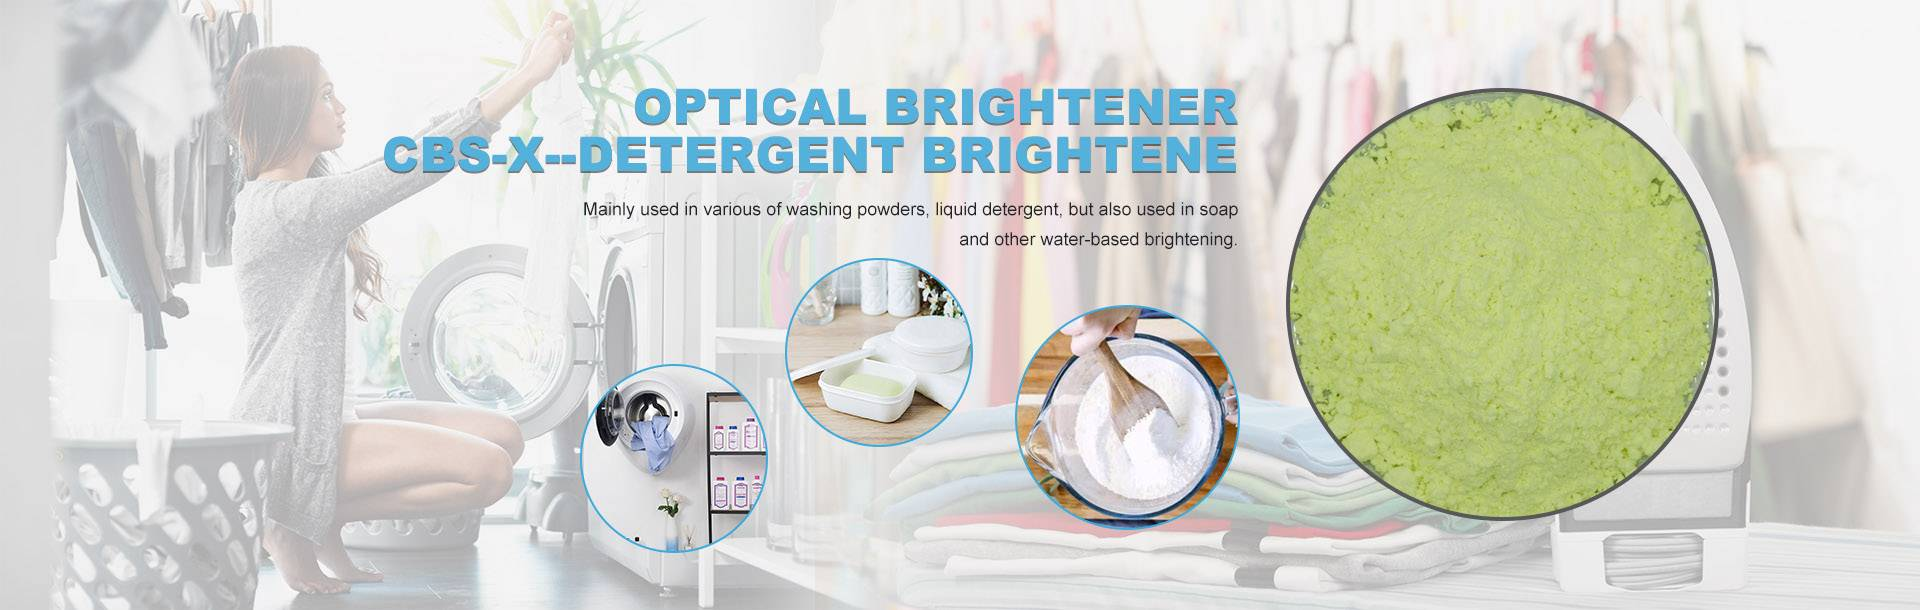 Optical brightener CBS-X--Detergent Brightener